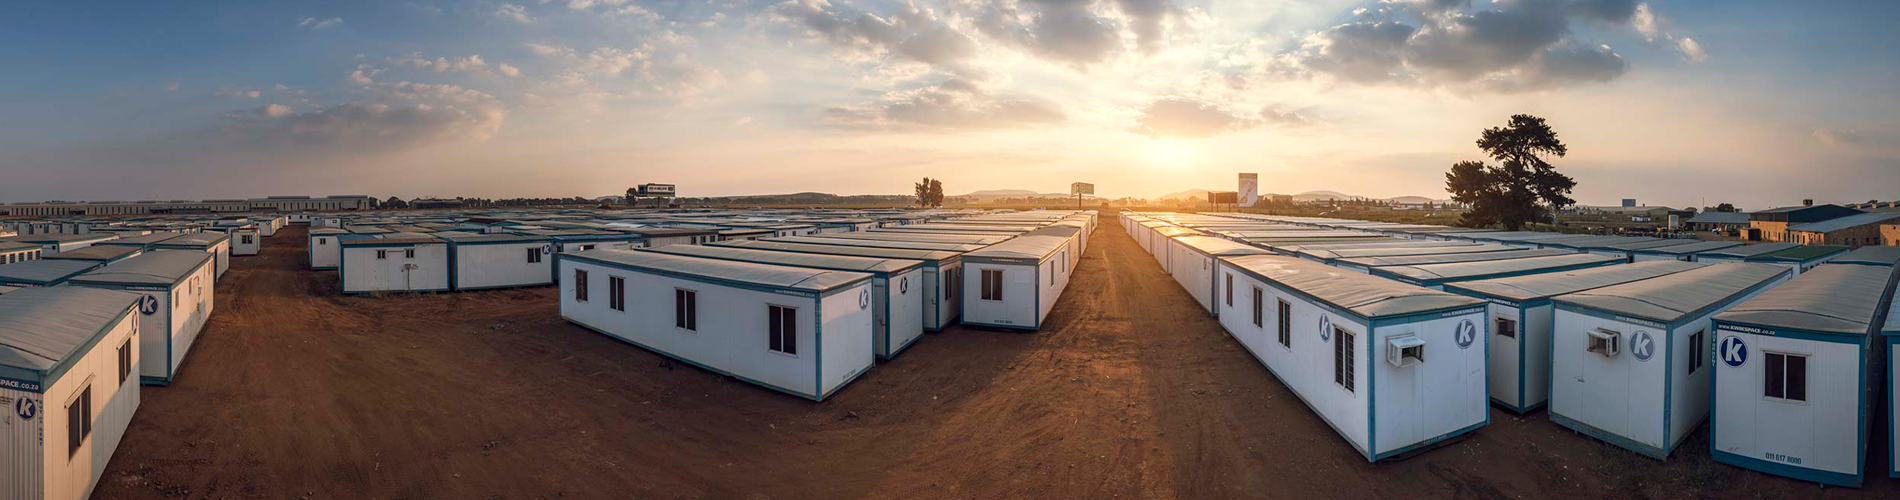 Kwikspace is Africa's largest manufacturer of prefab buildings. Our products are delivered quickly and ready for immediate use.